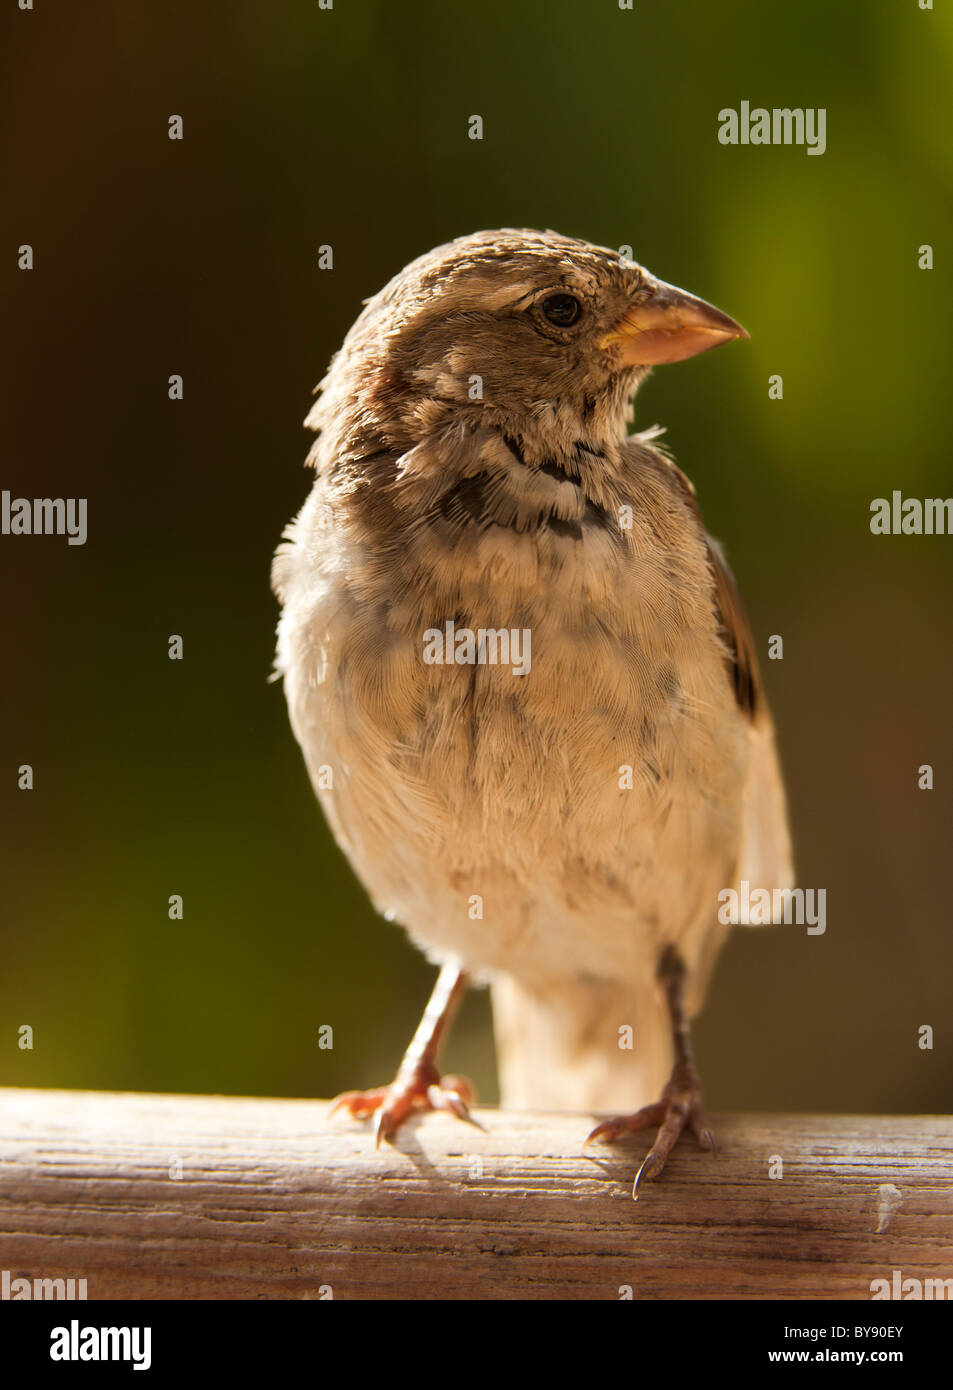 young sparrow - Stock Image